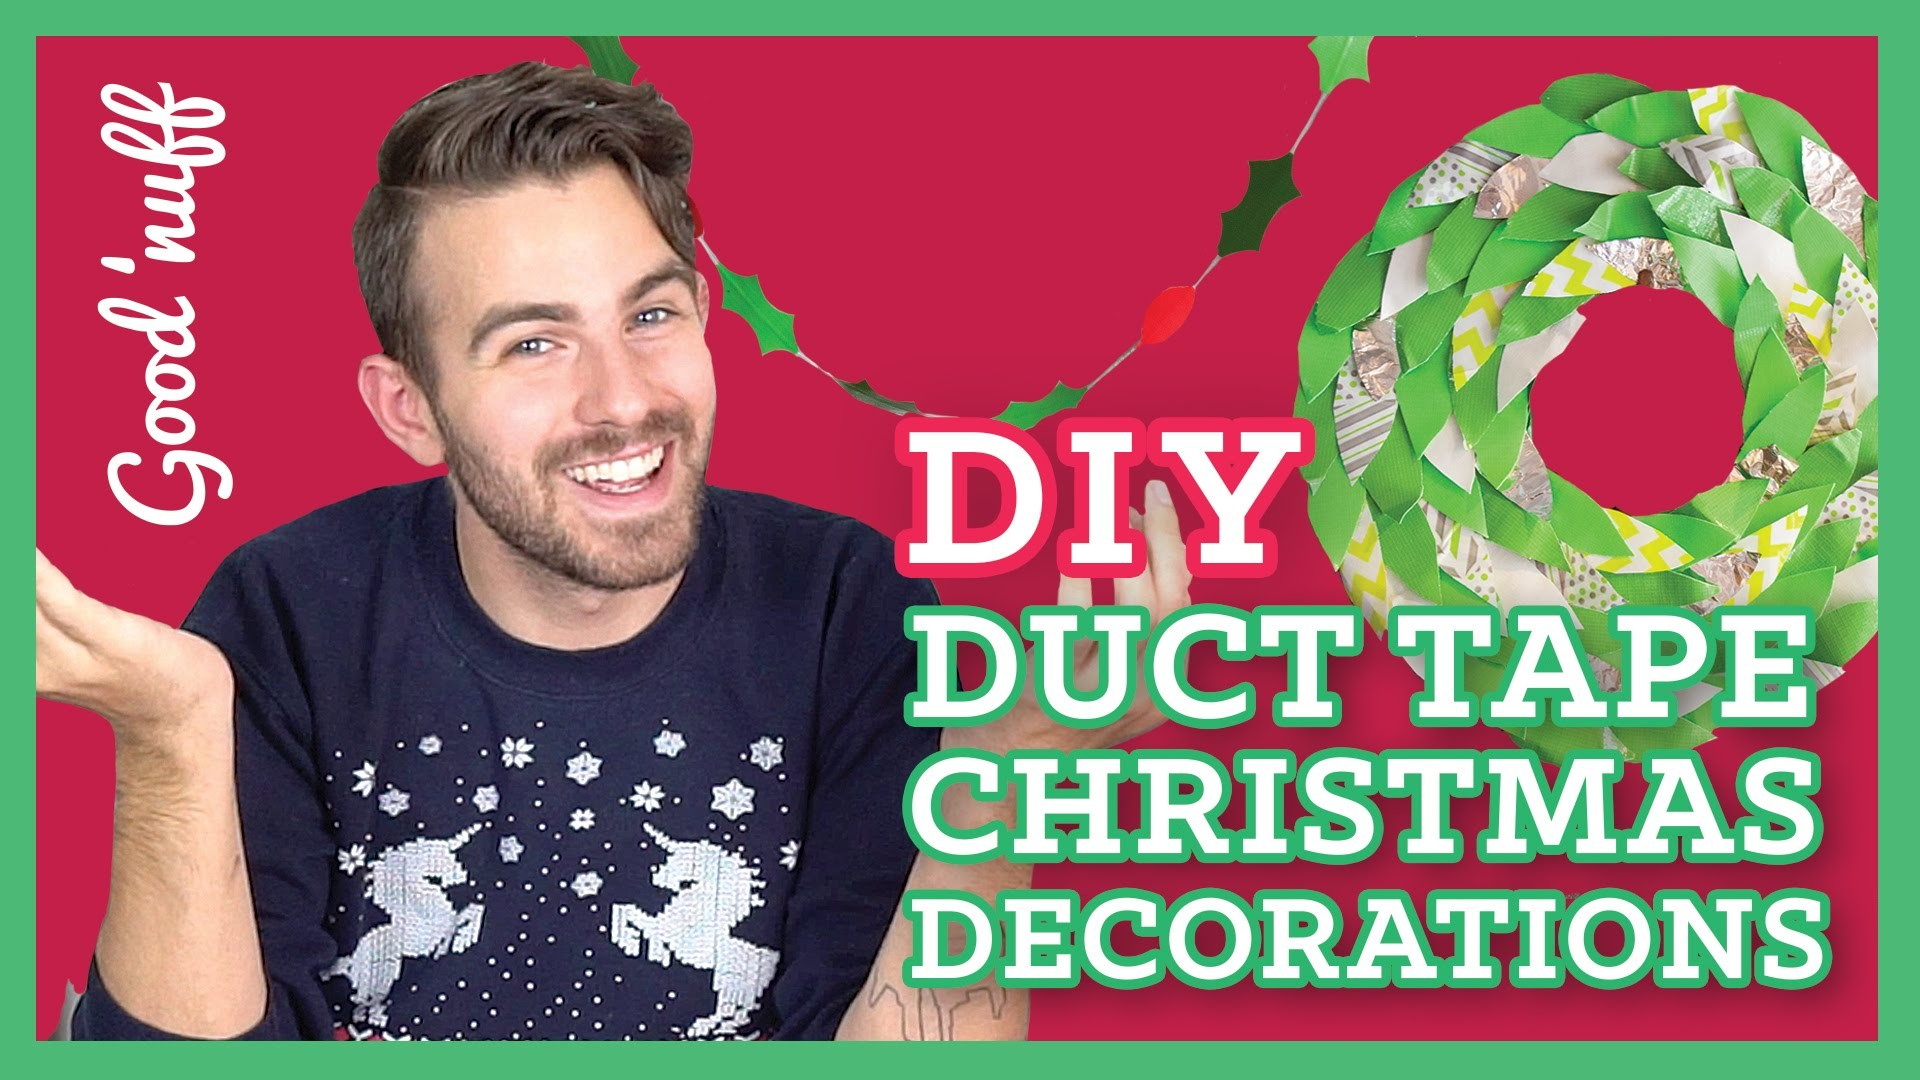 EASY DIY Duct Tape Christmas Decorations!